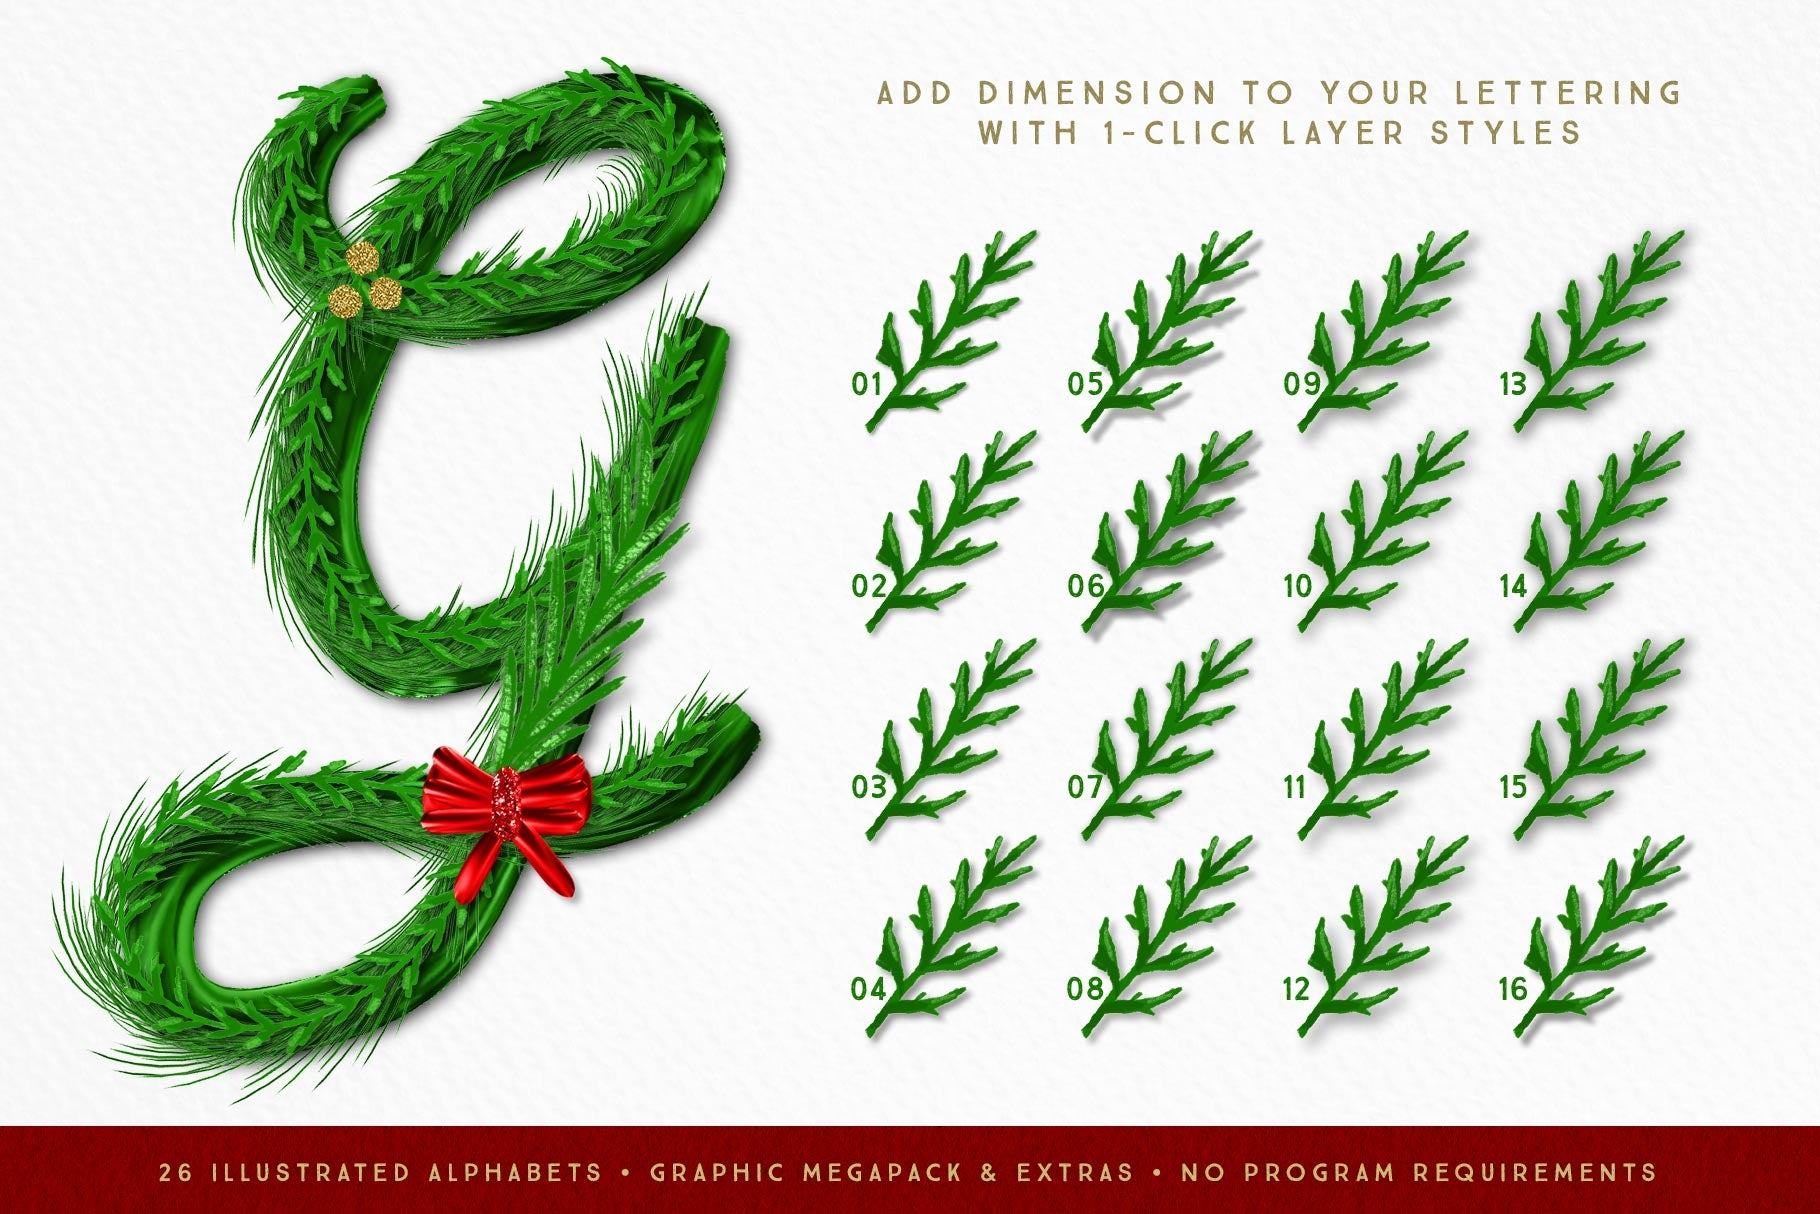 Luxe Christmas & Holiday Greenery Alphabets: layering lettering drop shadow styles